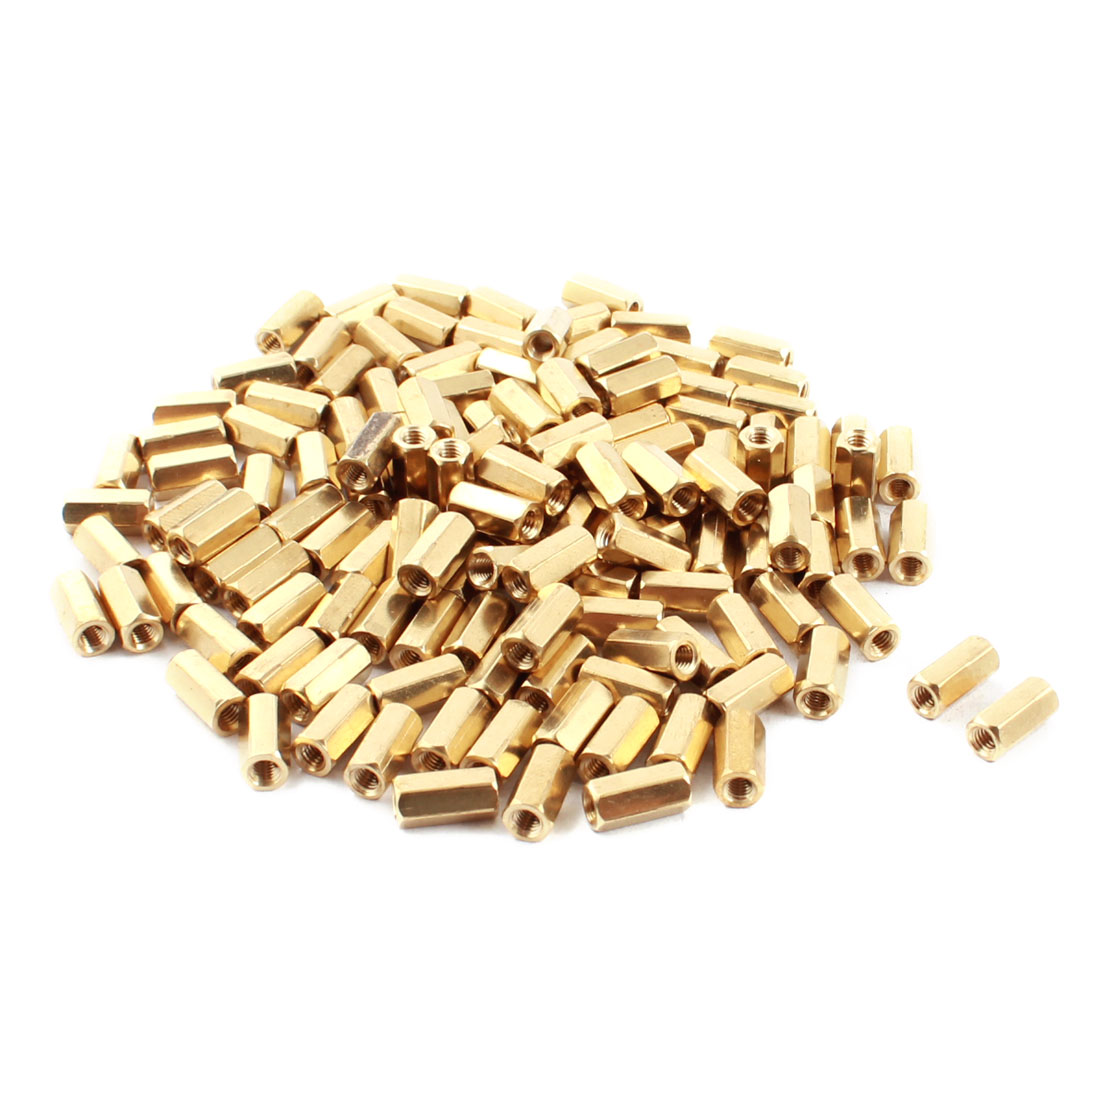 130Pcs Female Thread Gold Tone Dual Ends Brass Pillar PCB Standoff Hexagonal Spacer M3 x 10mm